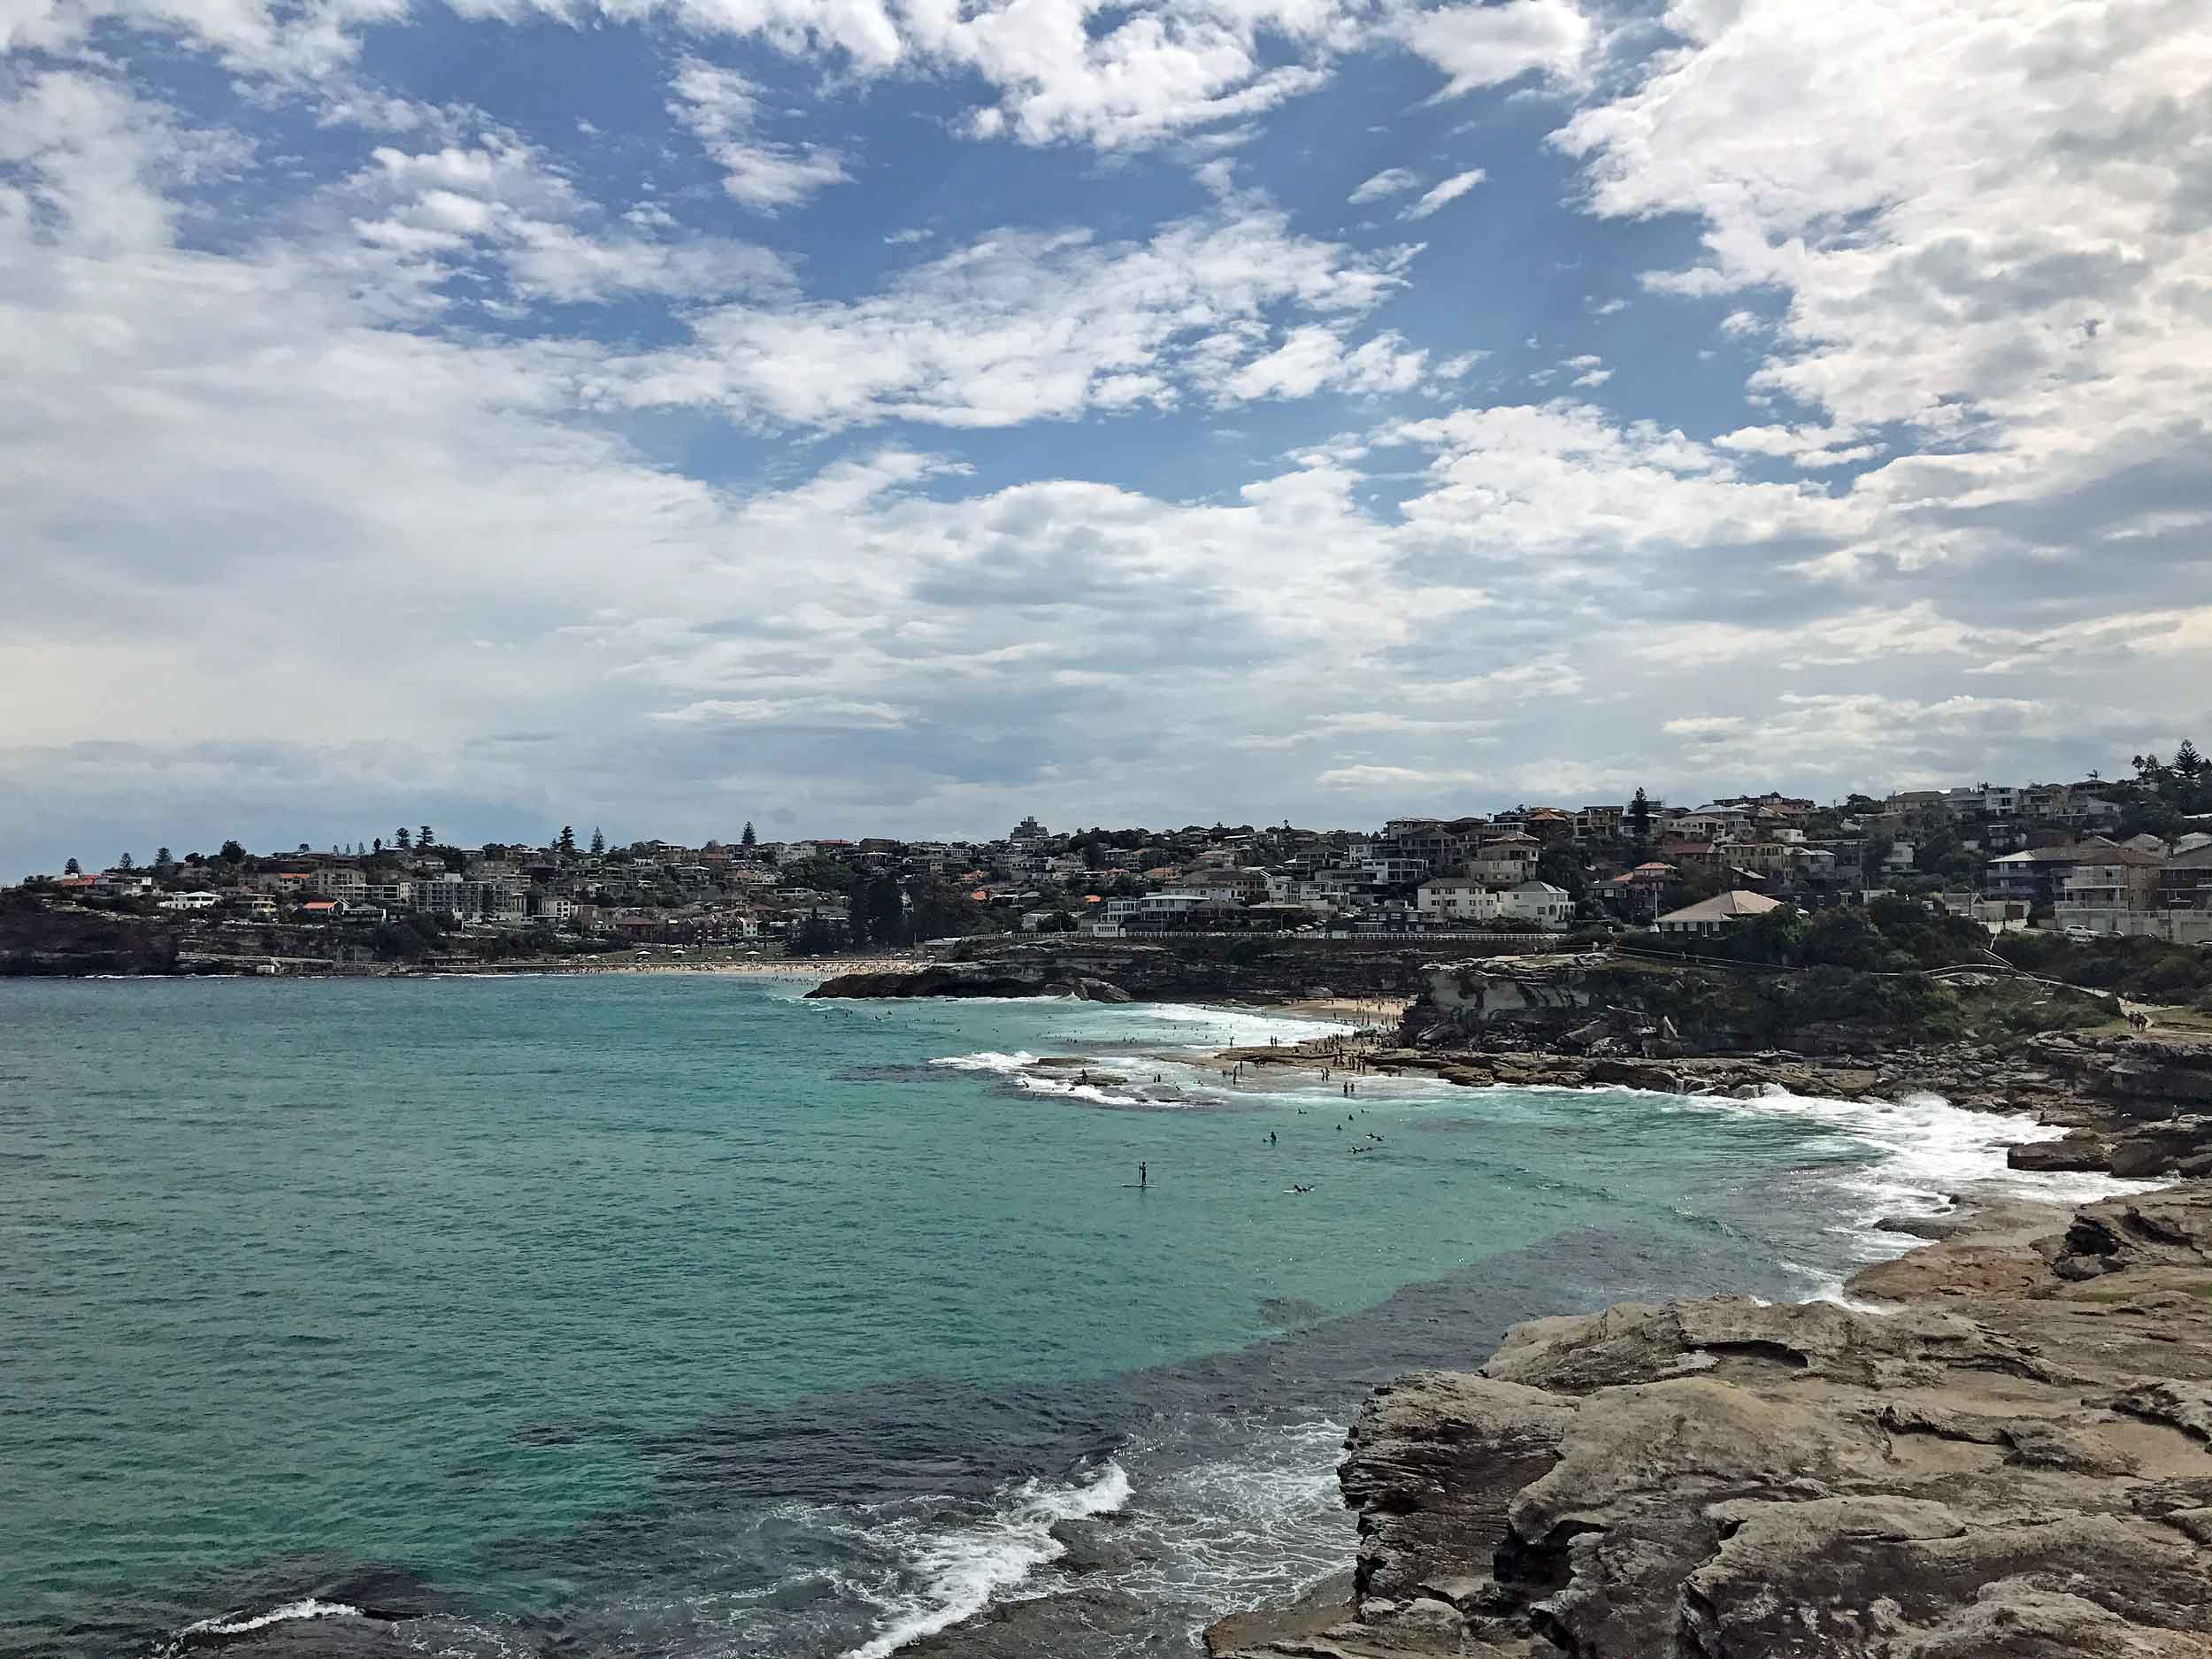 The Bondi coast walk, from Bondi Beach to Coogee offers scenic views and several beaches in-between (Feb 5).